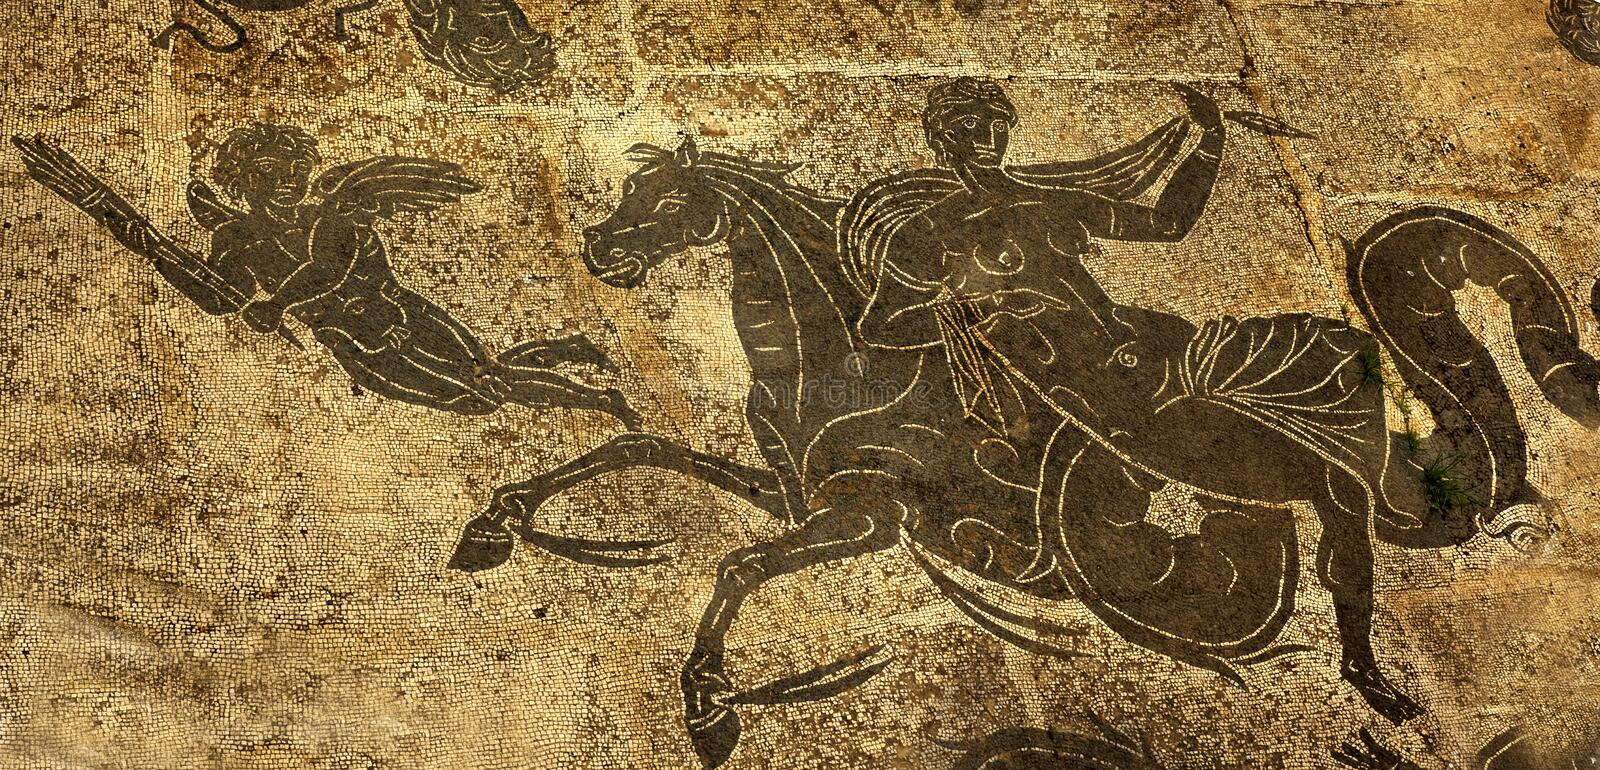 Ancient Roman Woman Horse Cupid Ostia Antica Rome. Ancient Roman Woman on Horse Cupid Mosaic Floors Baths of Neptune Ostia Antica Ruins Rome Italy Excavation of royalty free stock images